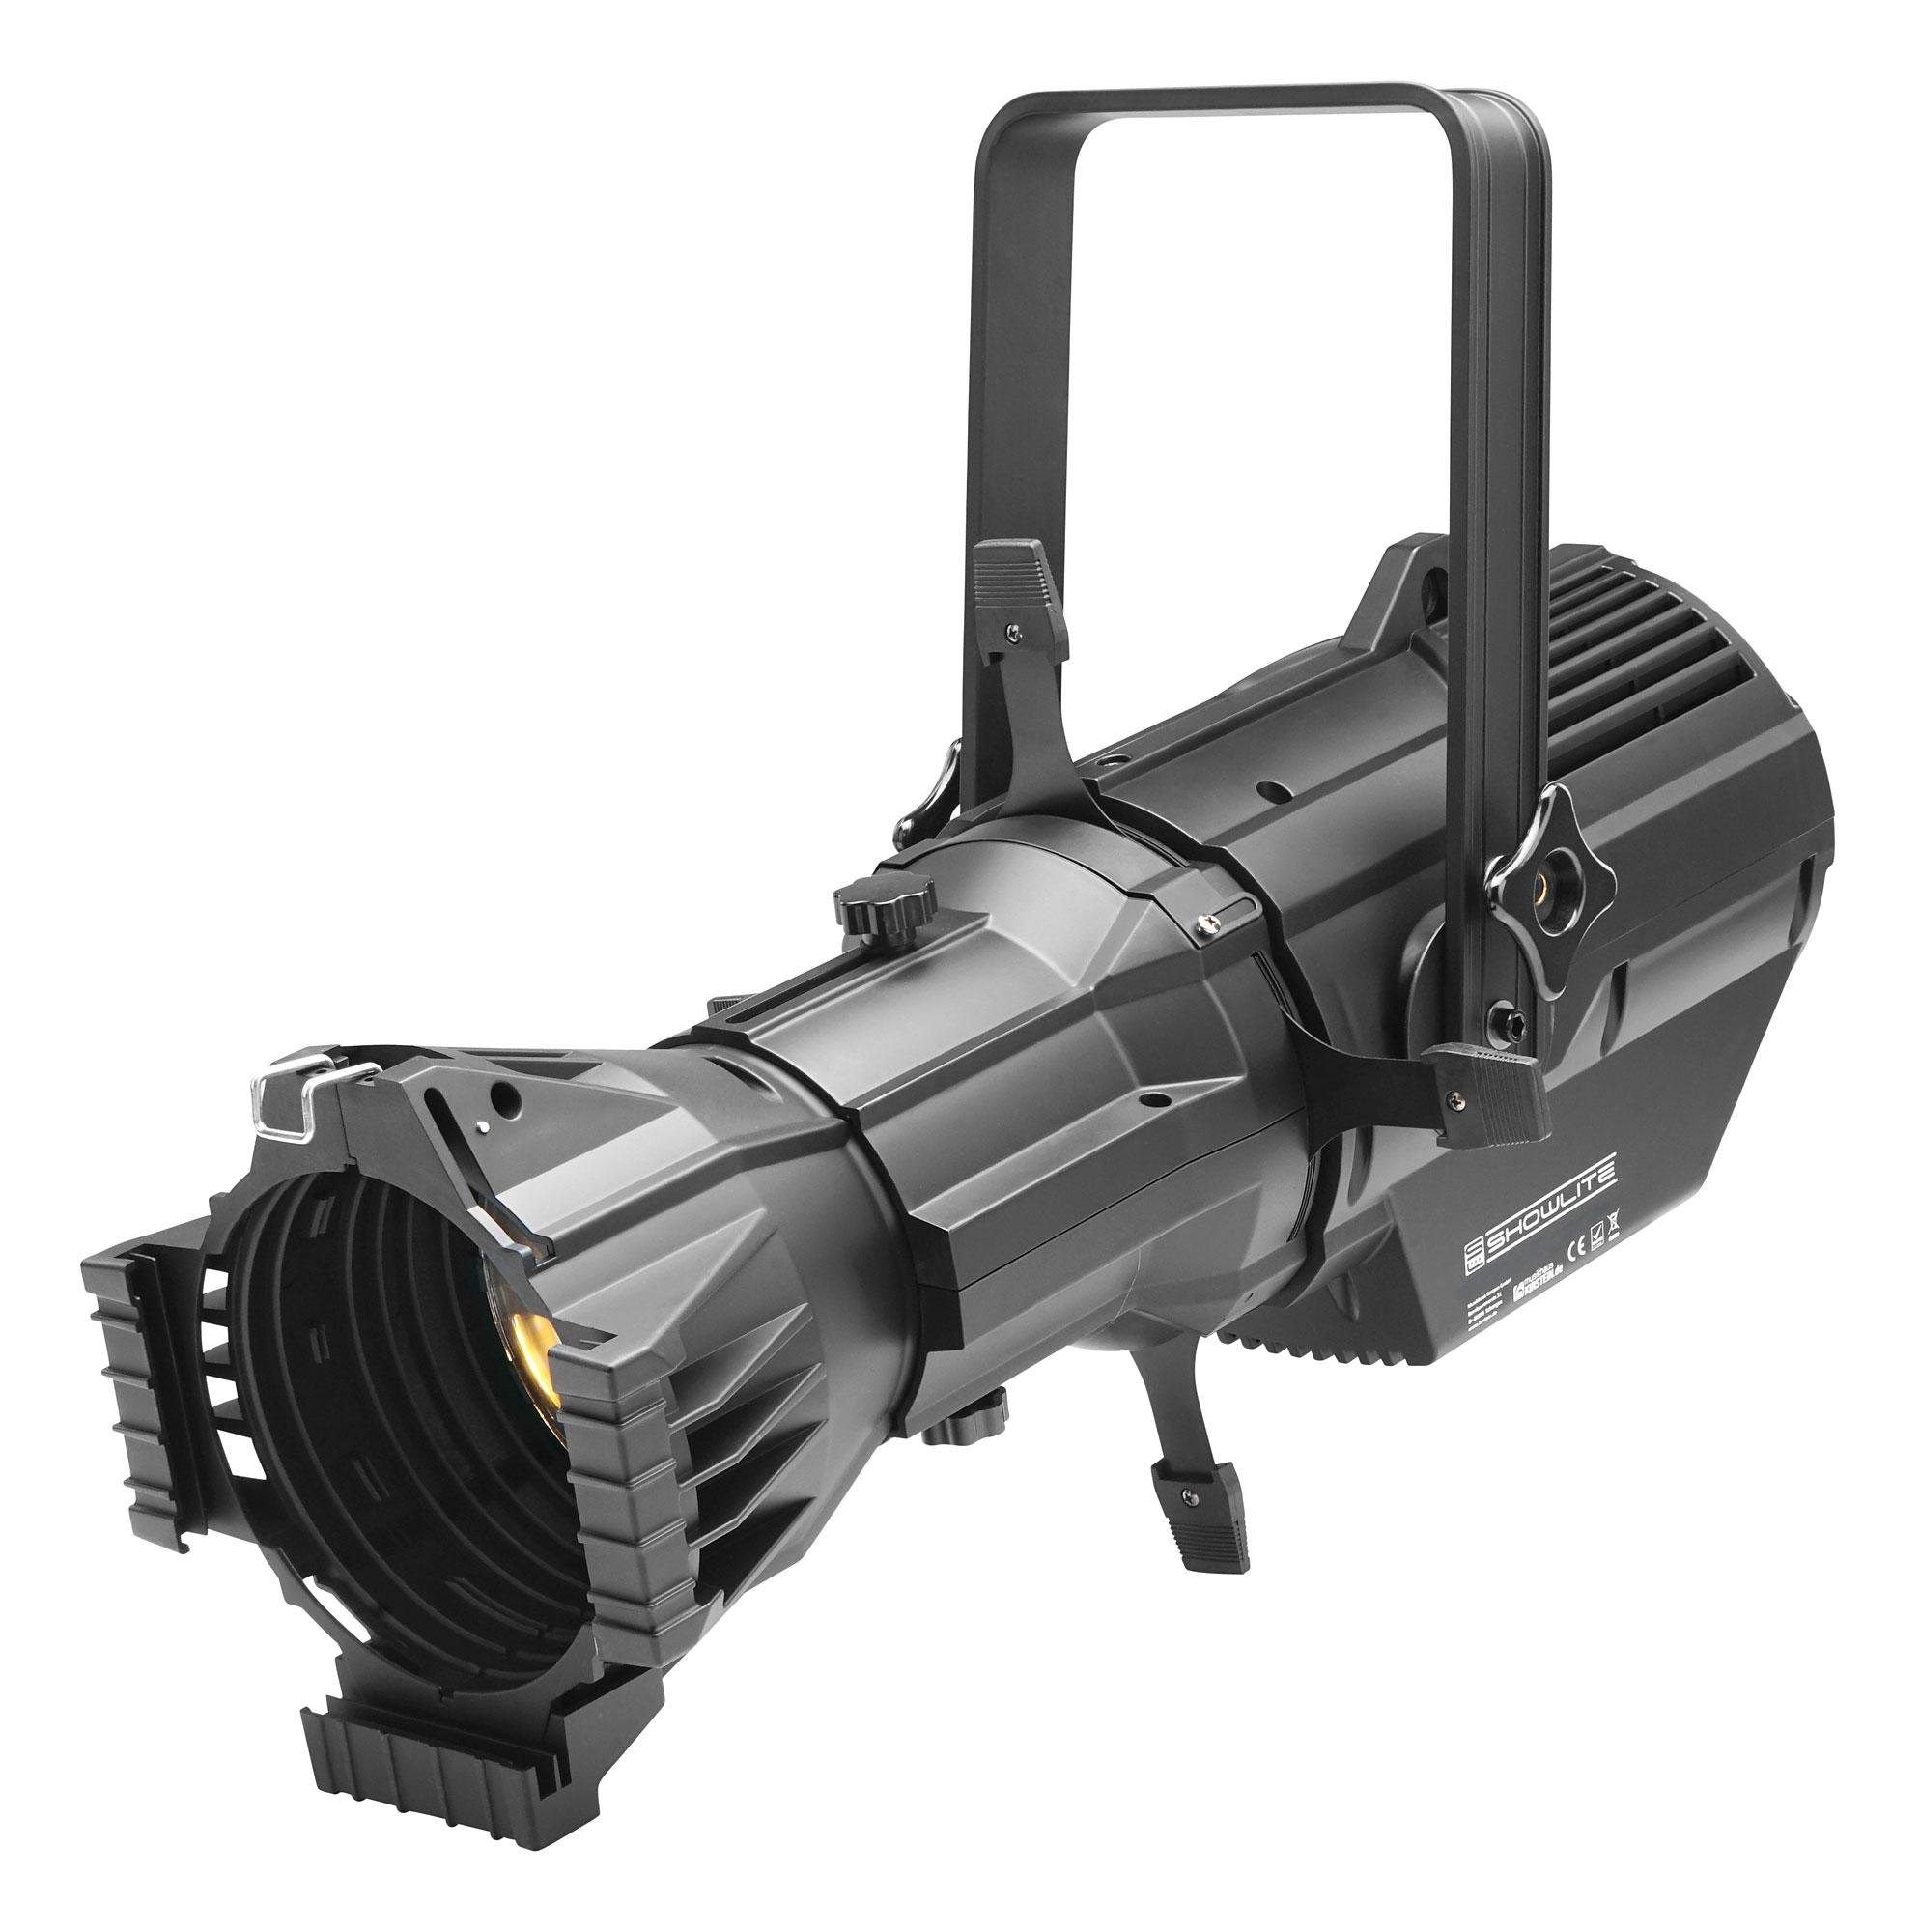 Showlite CPR 60|26 RGBW COB LED Profilscheinwerfer 26° 180 Watt